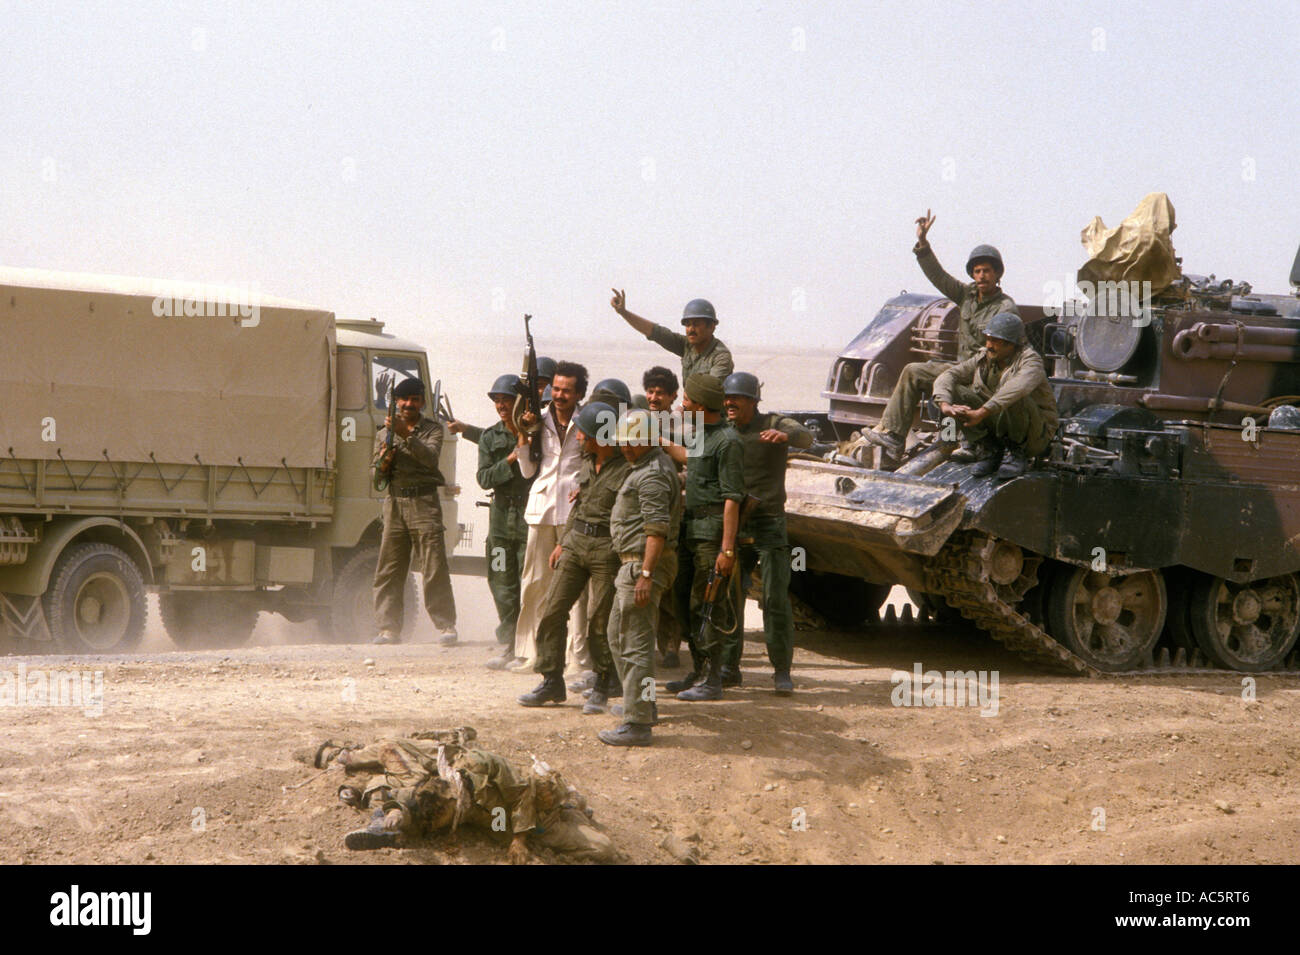 https://c7.alamy.com/comp/AC5RT6/iraqi-troops-during-iraq-iran-war-1980s-AC5RT6.jpg